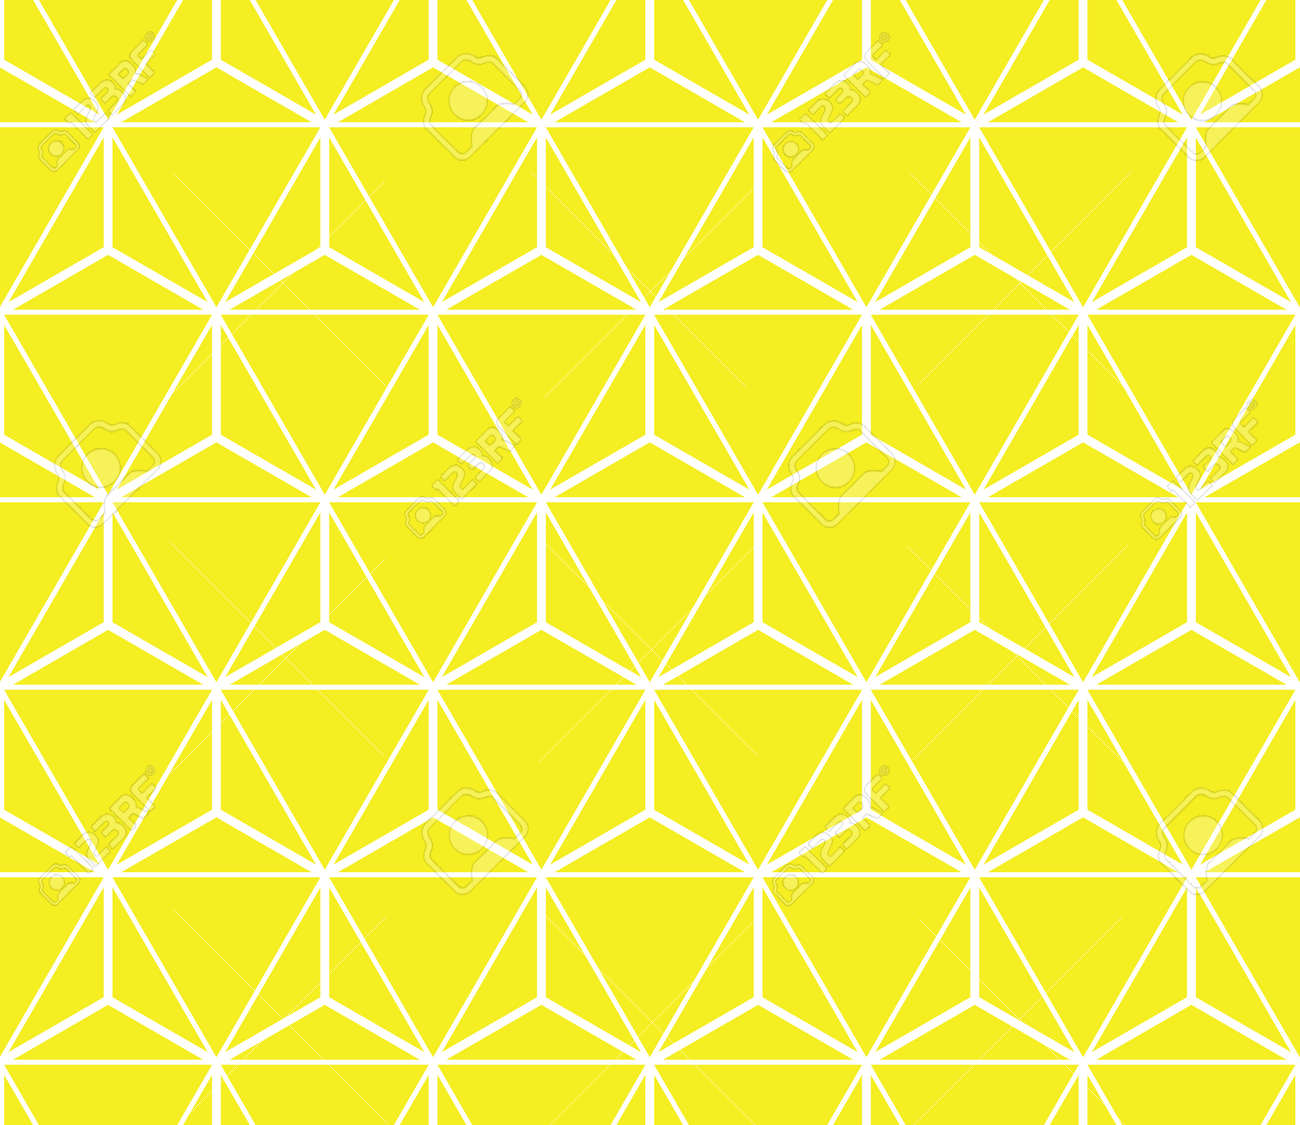 Abstract geometric pattern. A seamless vector background. White and yellow ornament. Graphic modern pattern. Simple lattice graphic design - 169878895